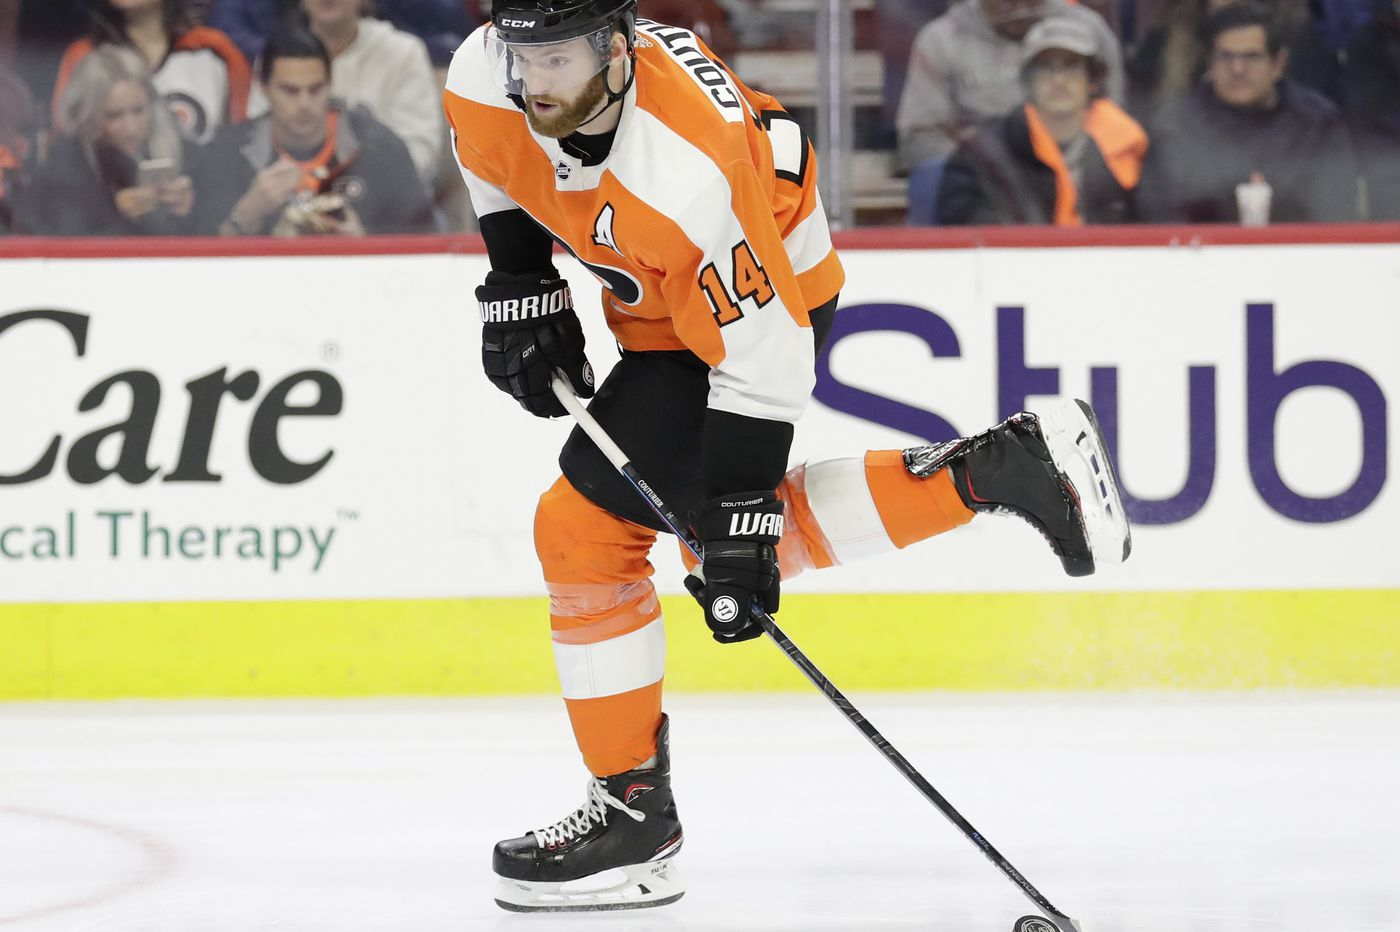 Sean Couturier injured and out of Flyers' lineup; Anthony Stolarz making 4th straight start